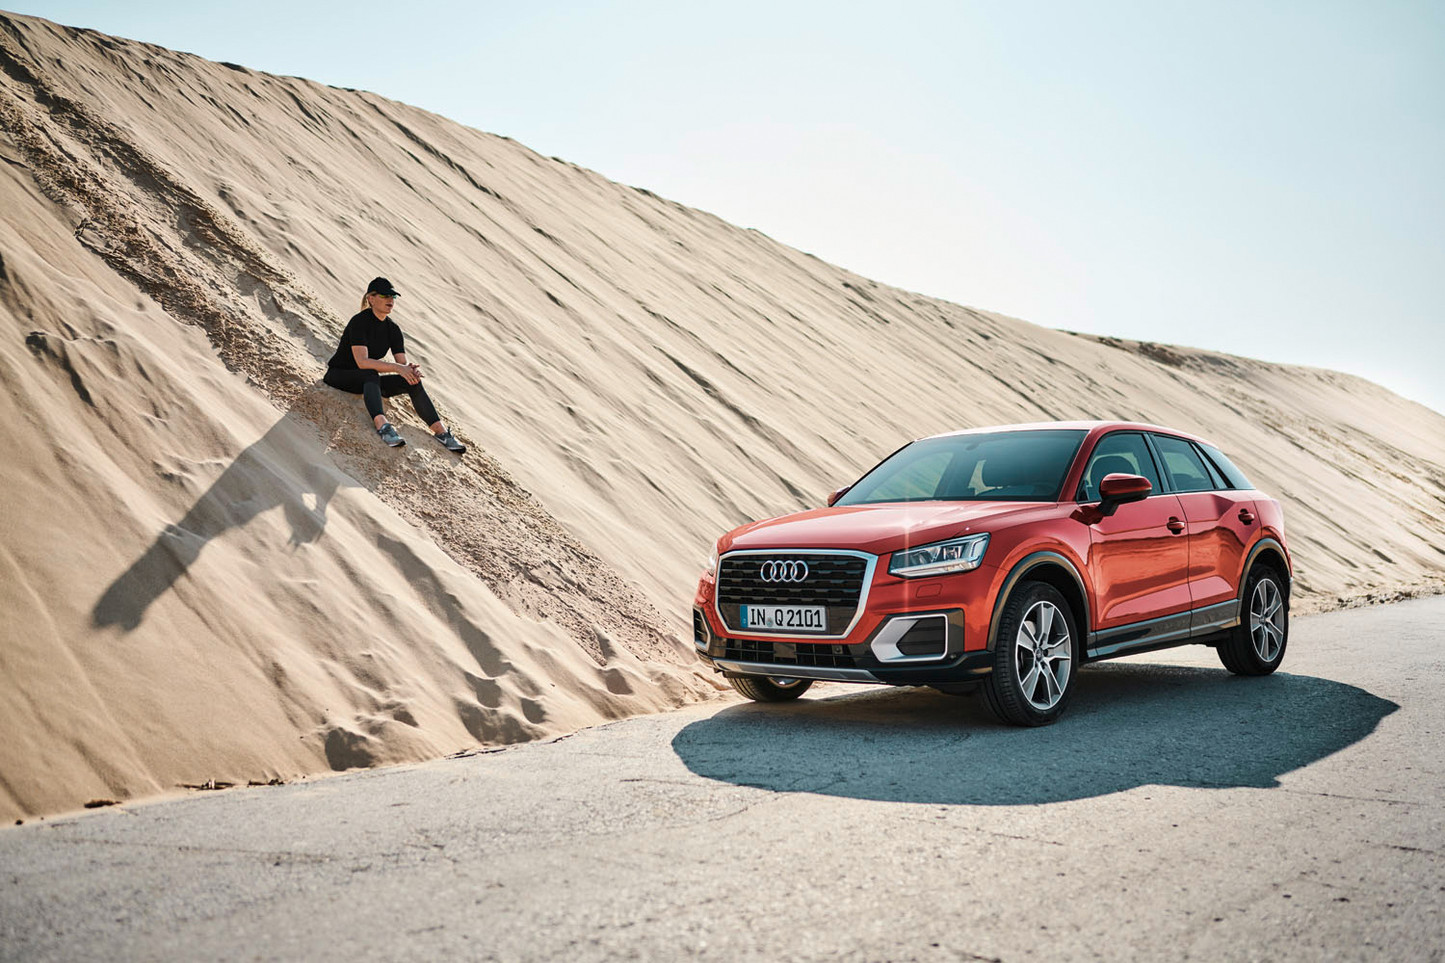 audi-q2-suv-spain-beach-sand-people-haegele-automotive-transportation-auto-car-photography-photographer-advertising-germany-deutschland-fotograf-werbung